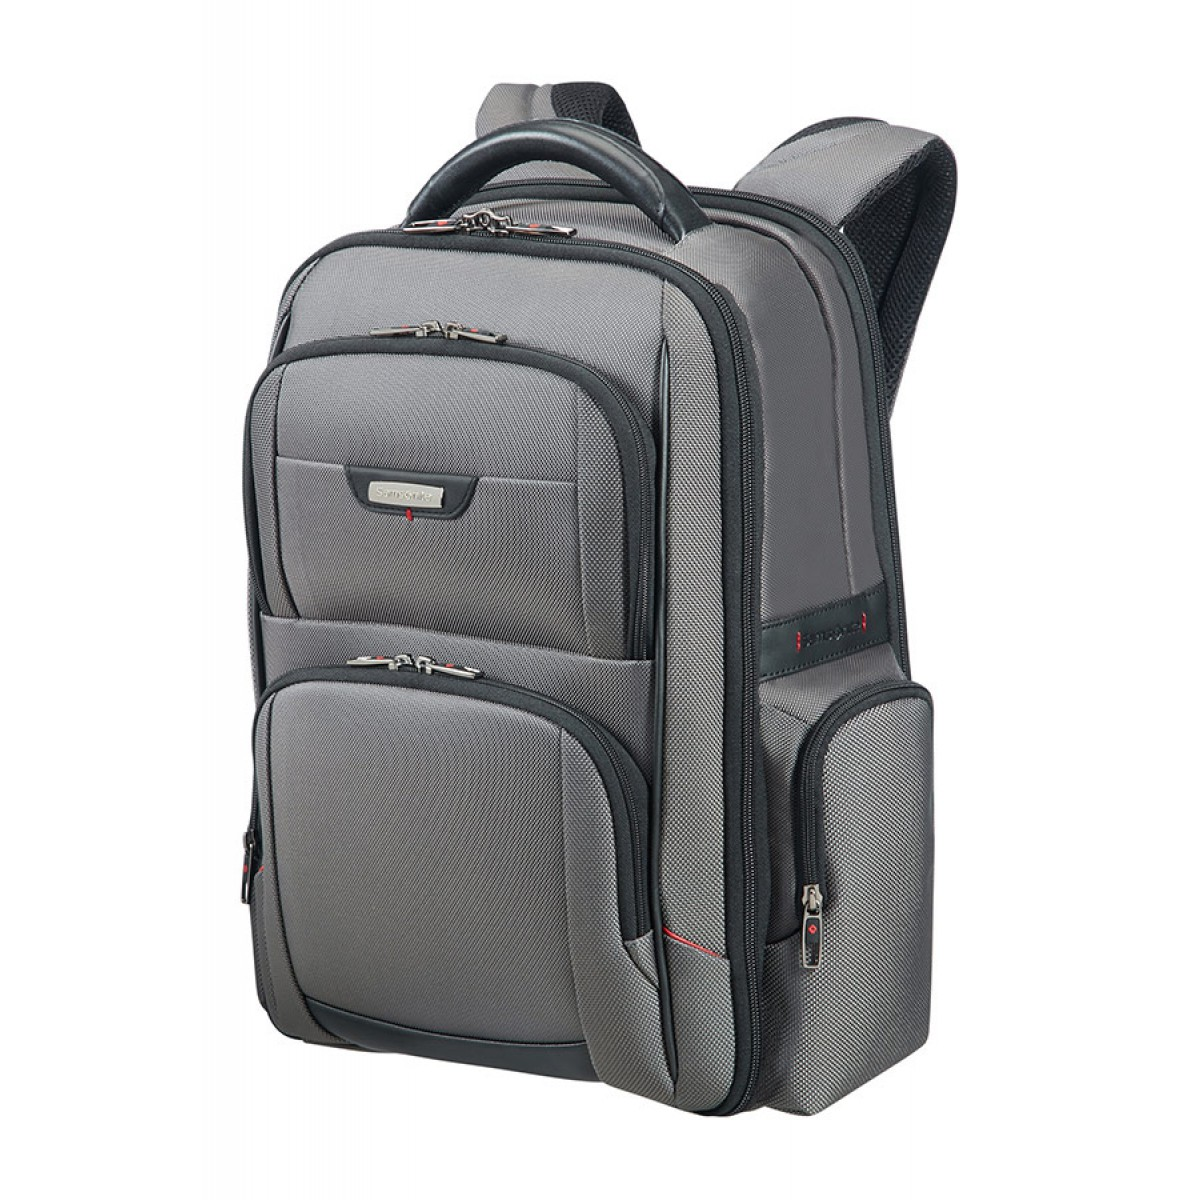 LAPTOP BACKPACK 3V 15.6 PRO-DLX 4 - SAMSONITE